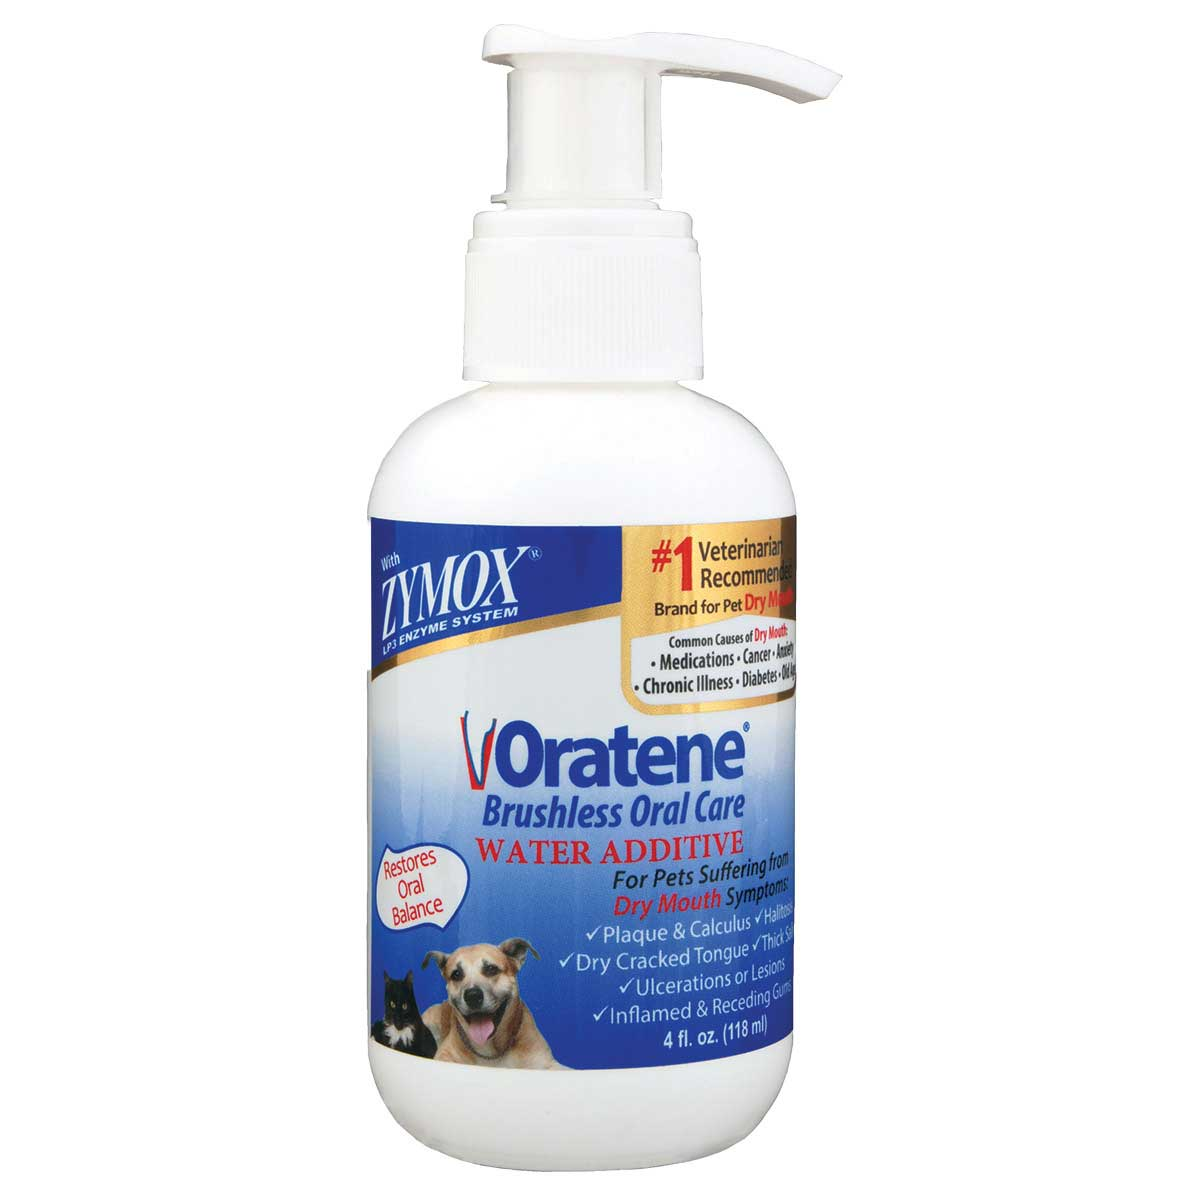 Zymox Oral Care Water Additive for Dogs 4 oz